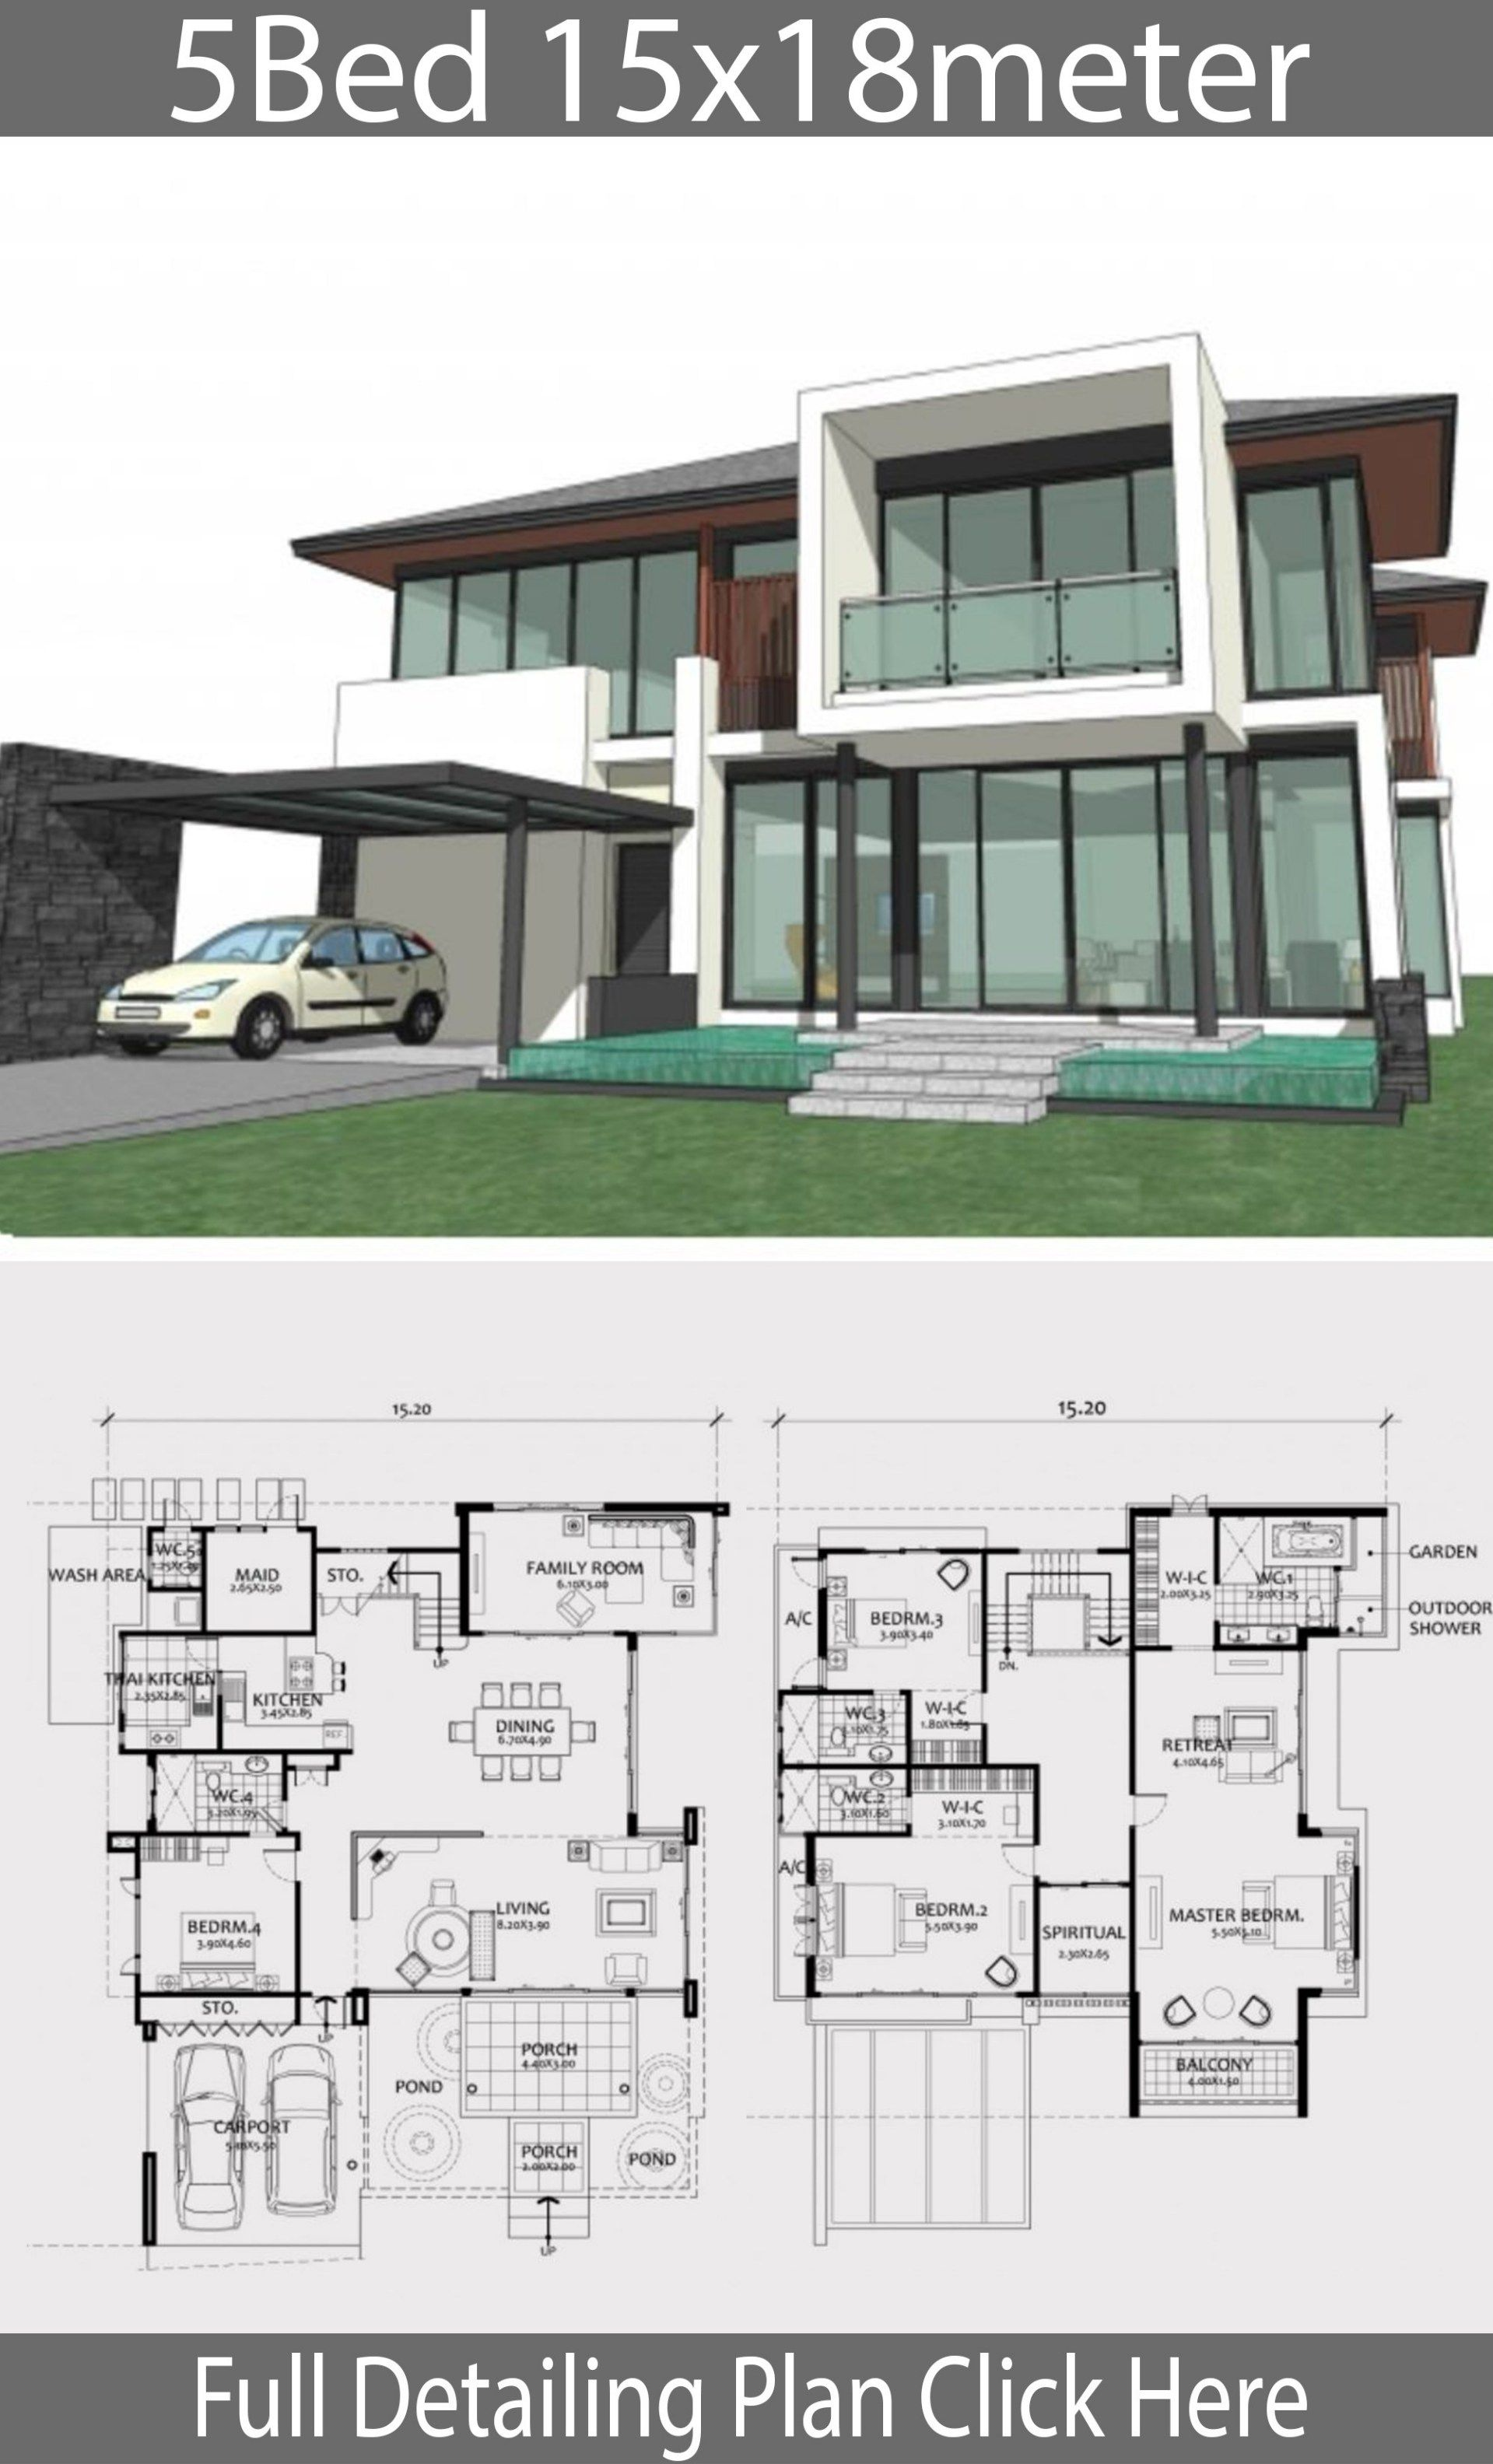 Home Design Plan 15x18m With 5 Bedrooms Home Ideas Home Design Plan Model House Plan Bungalow House Design